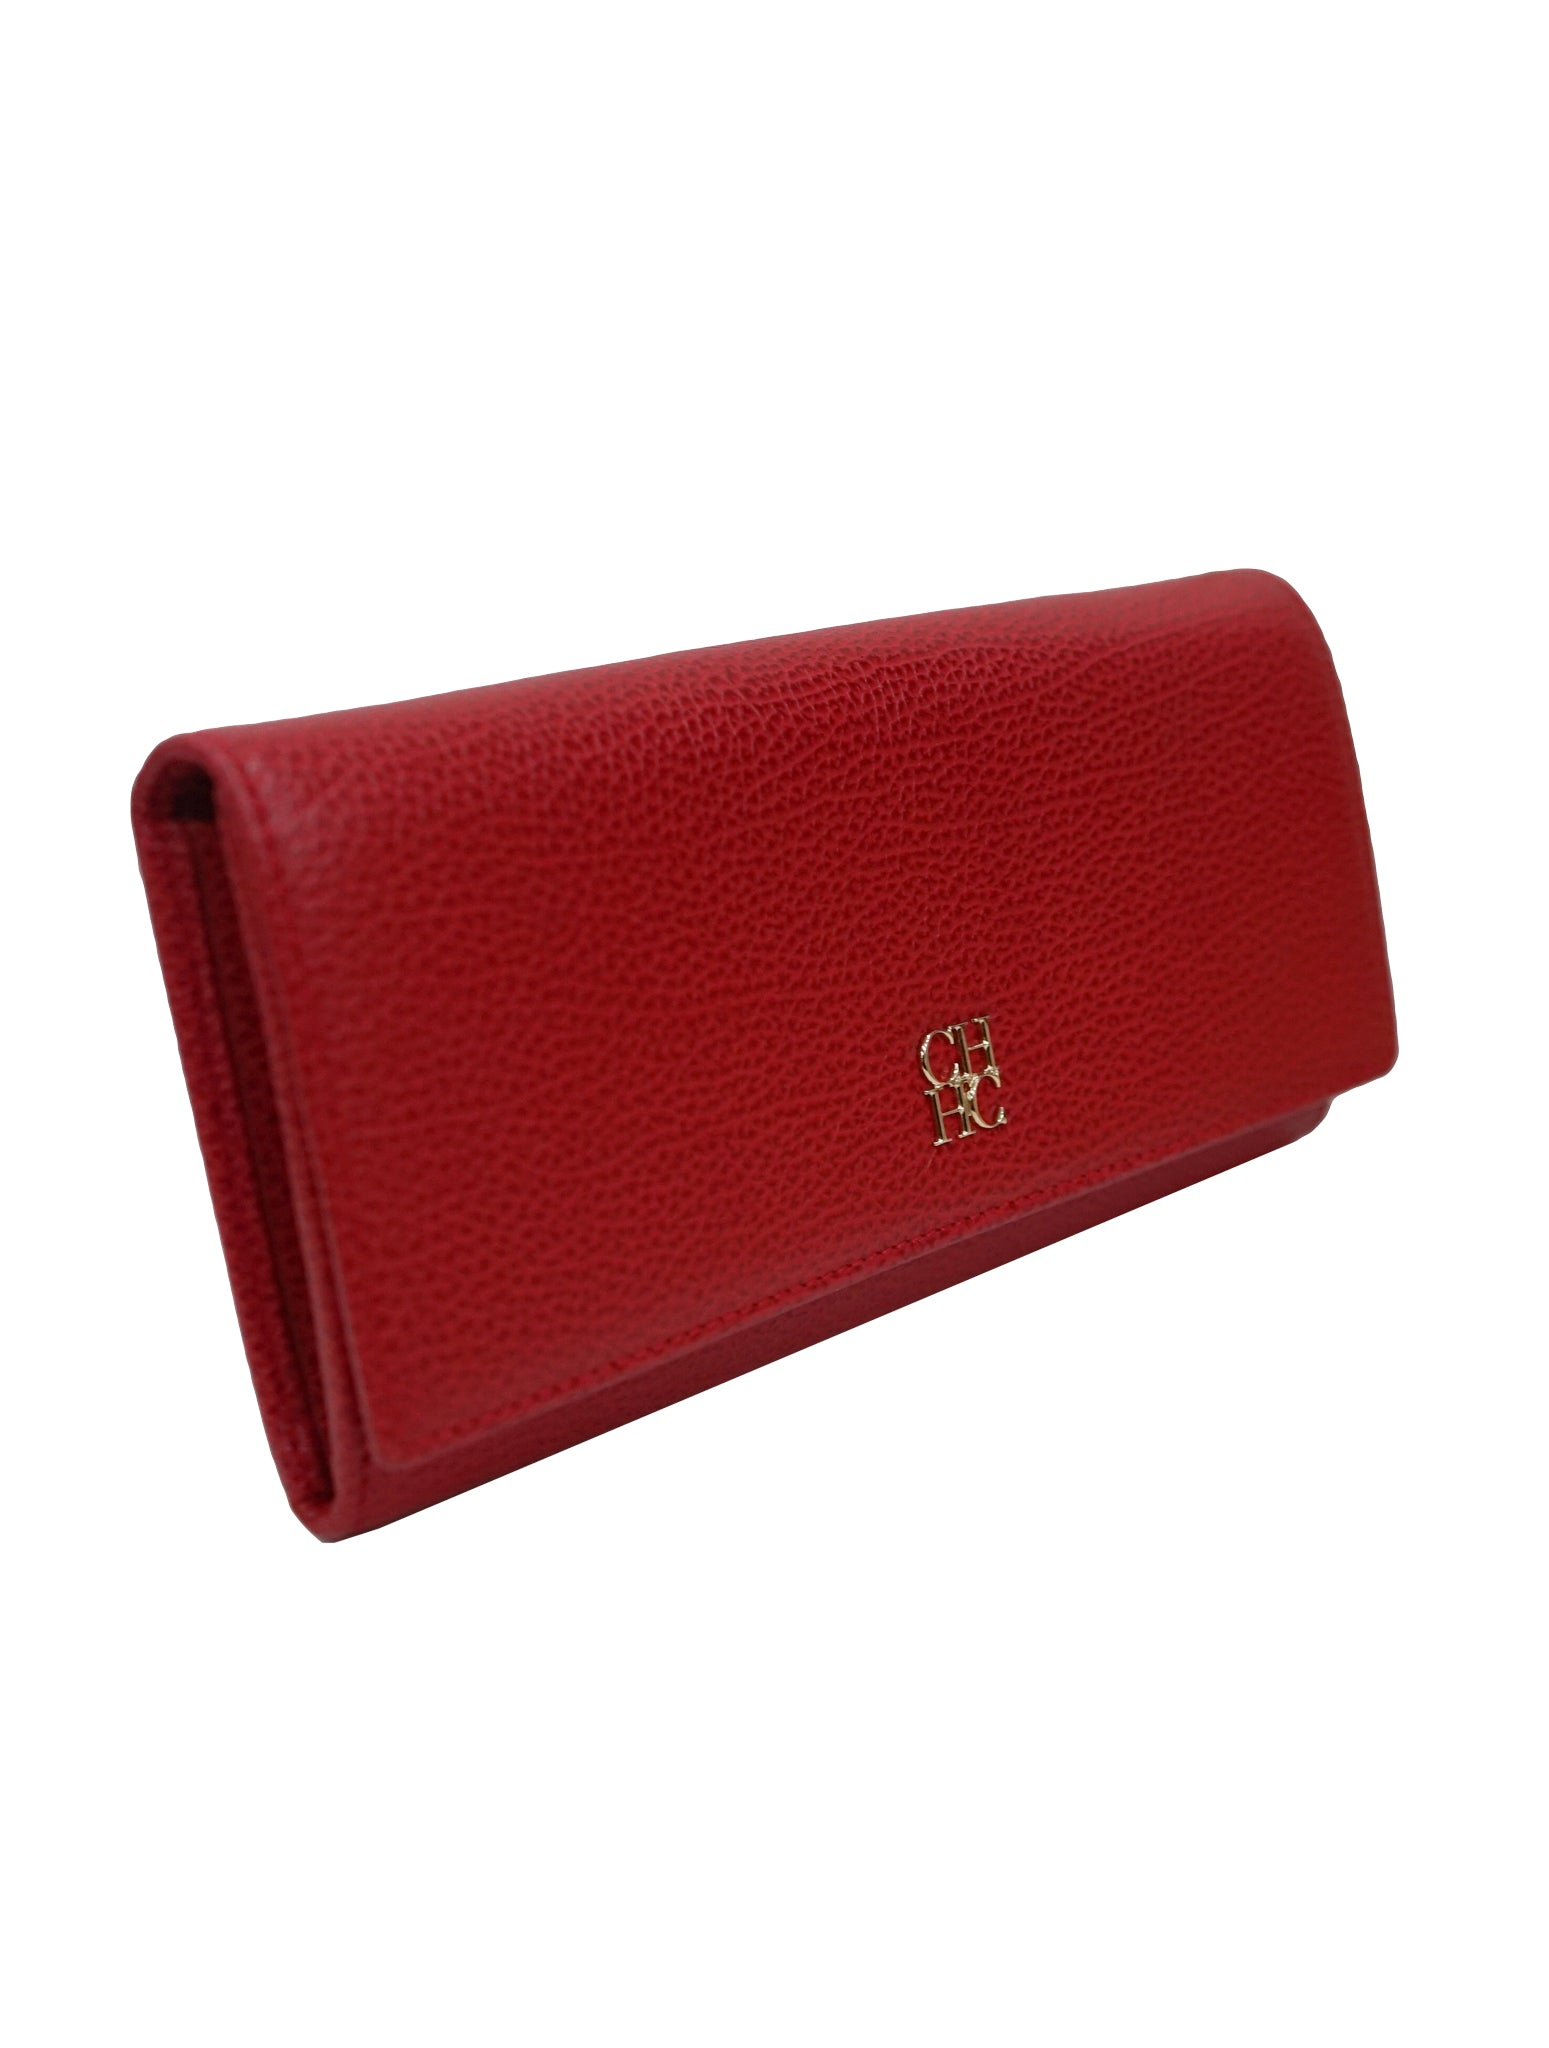 RED LEATHER CONTINENTAL WALLET